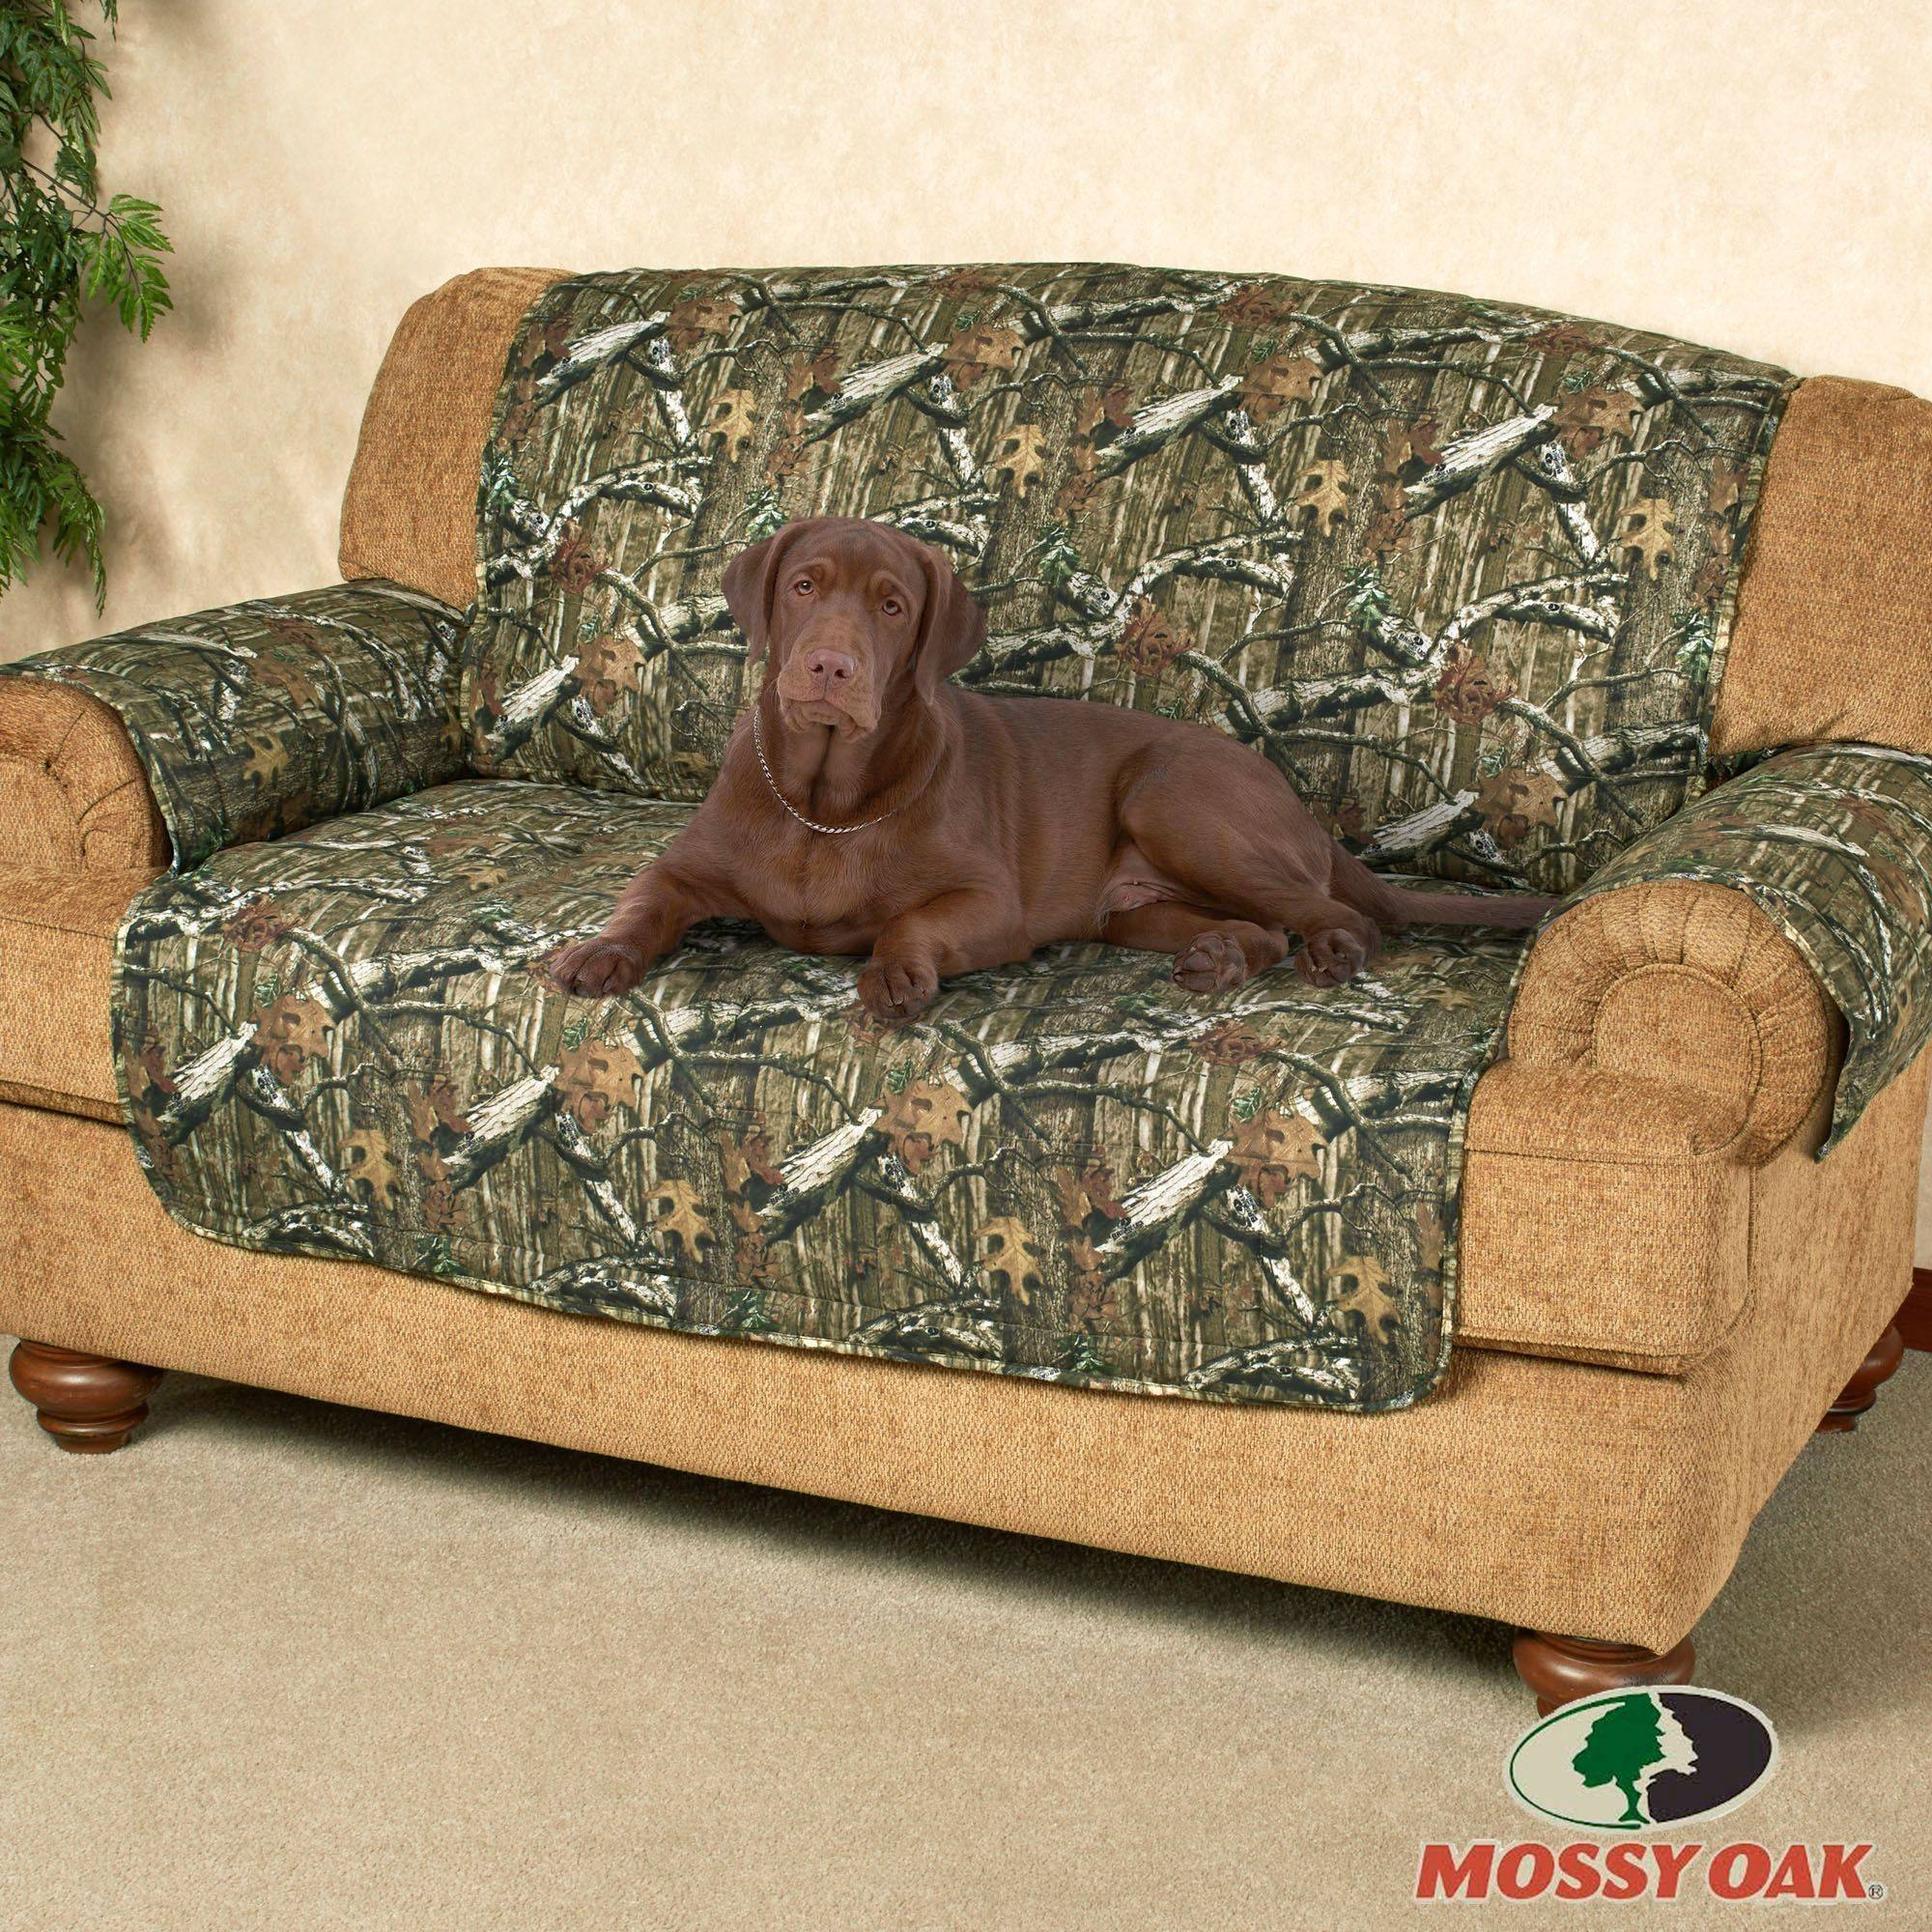 Mossy Oak Break Up Infinity Camo Furniture Protectors for Camo Sofa Cover (Image 12 of 30)